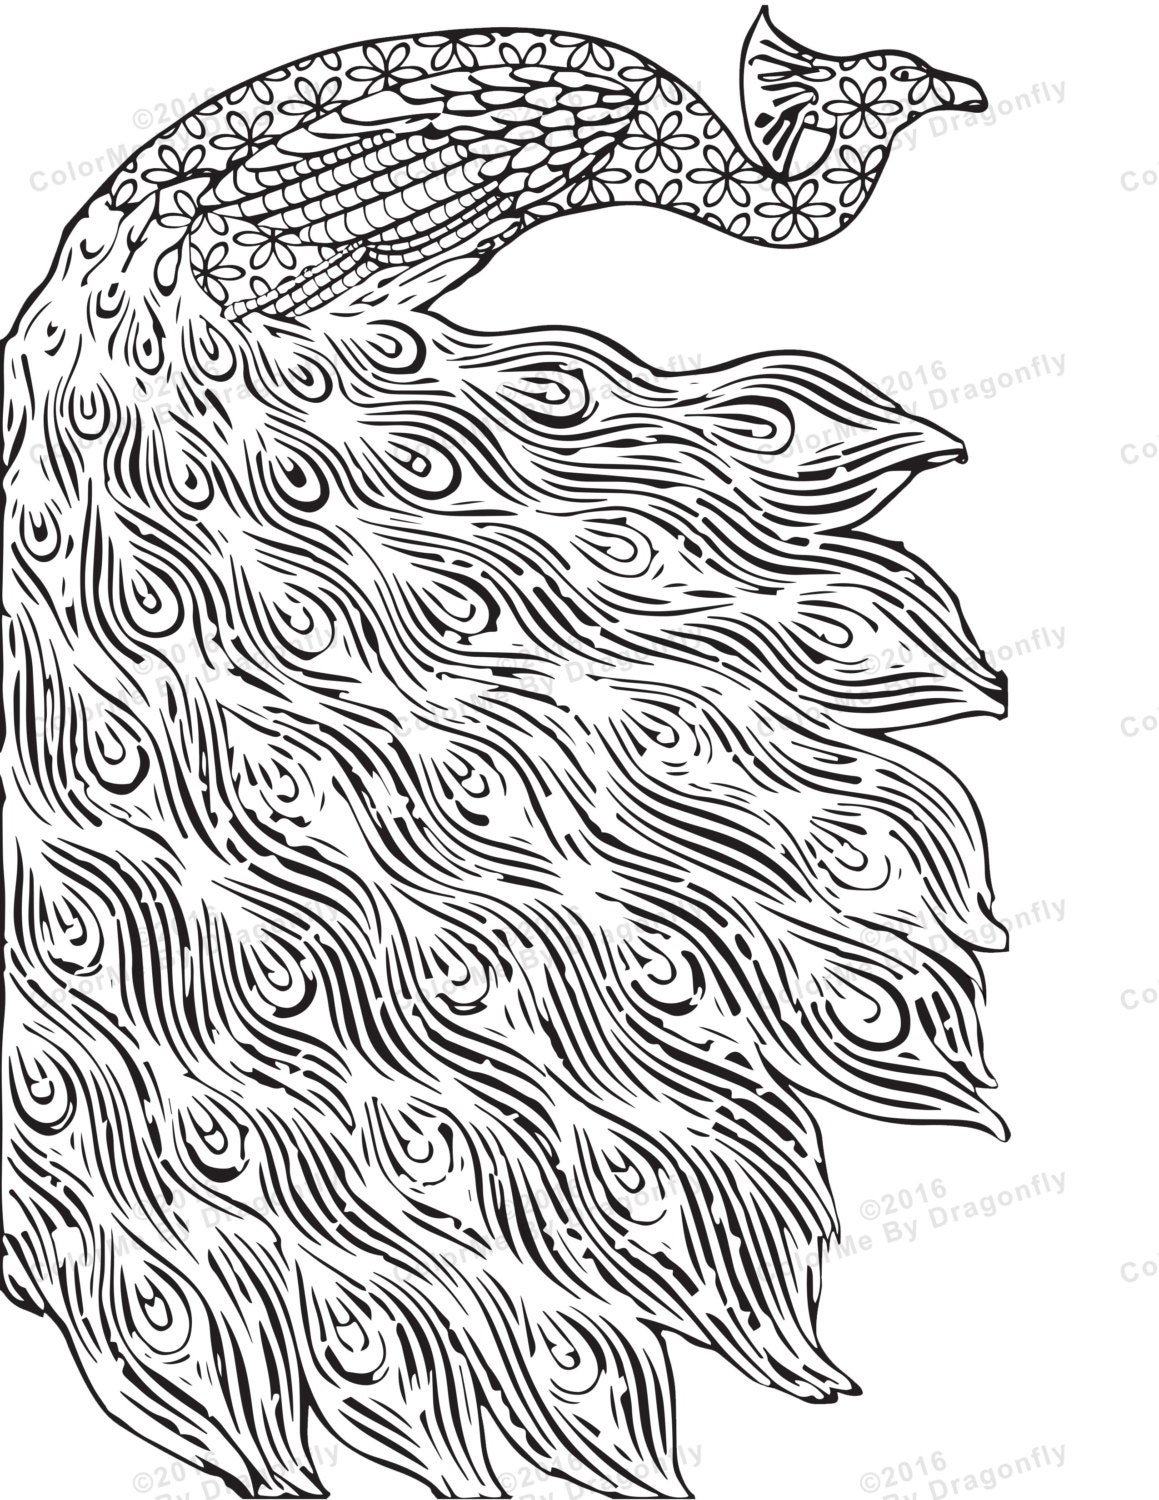 Peacock coloring pages - photo#45